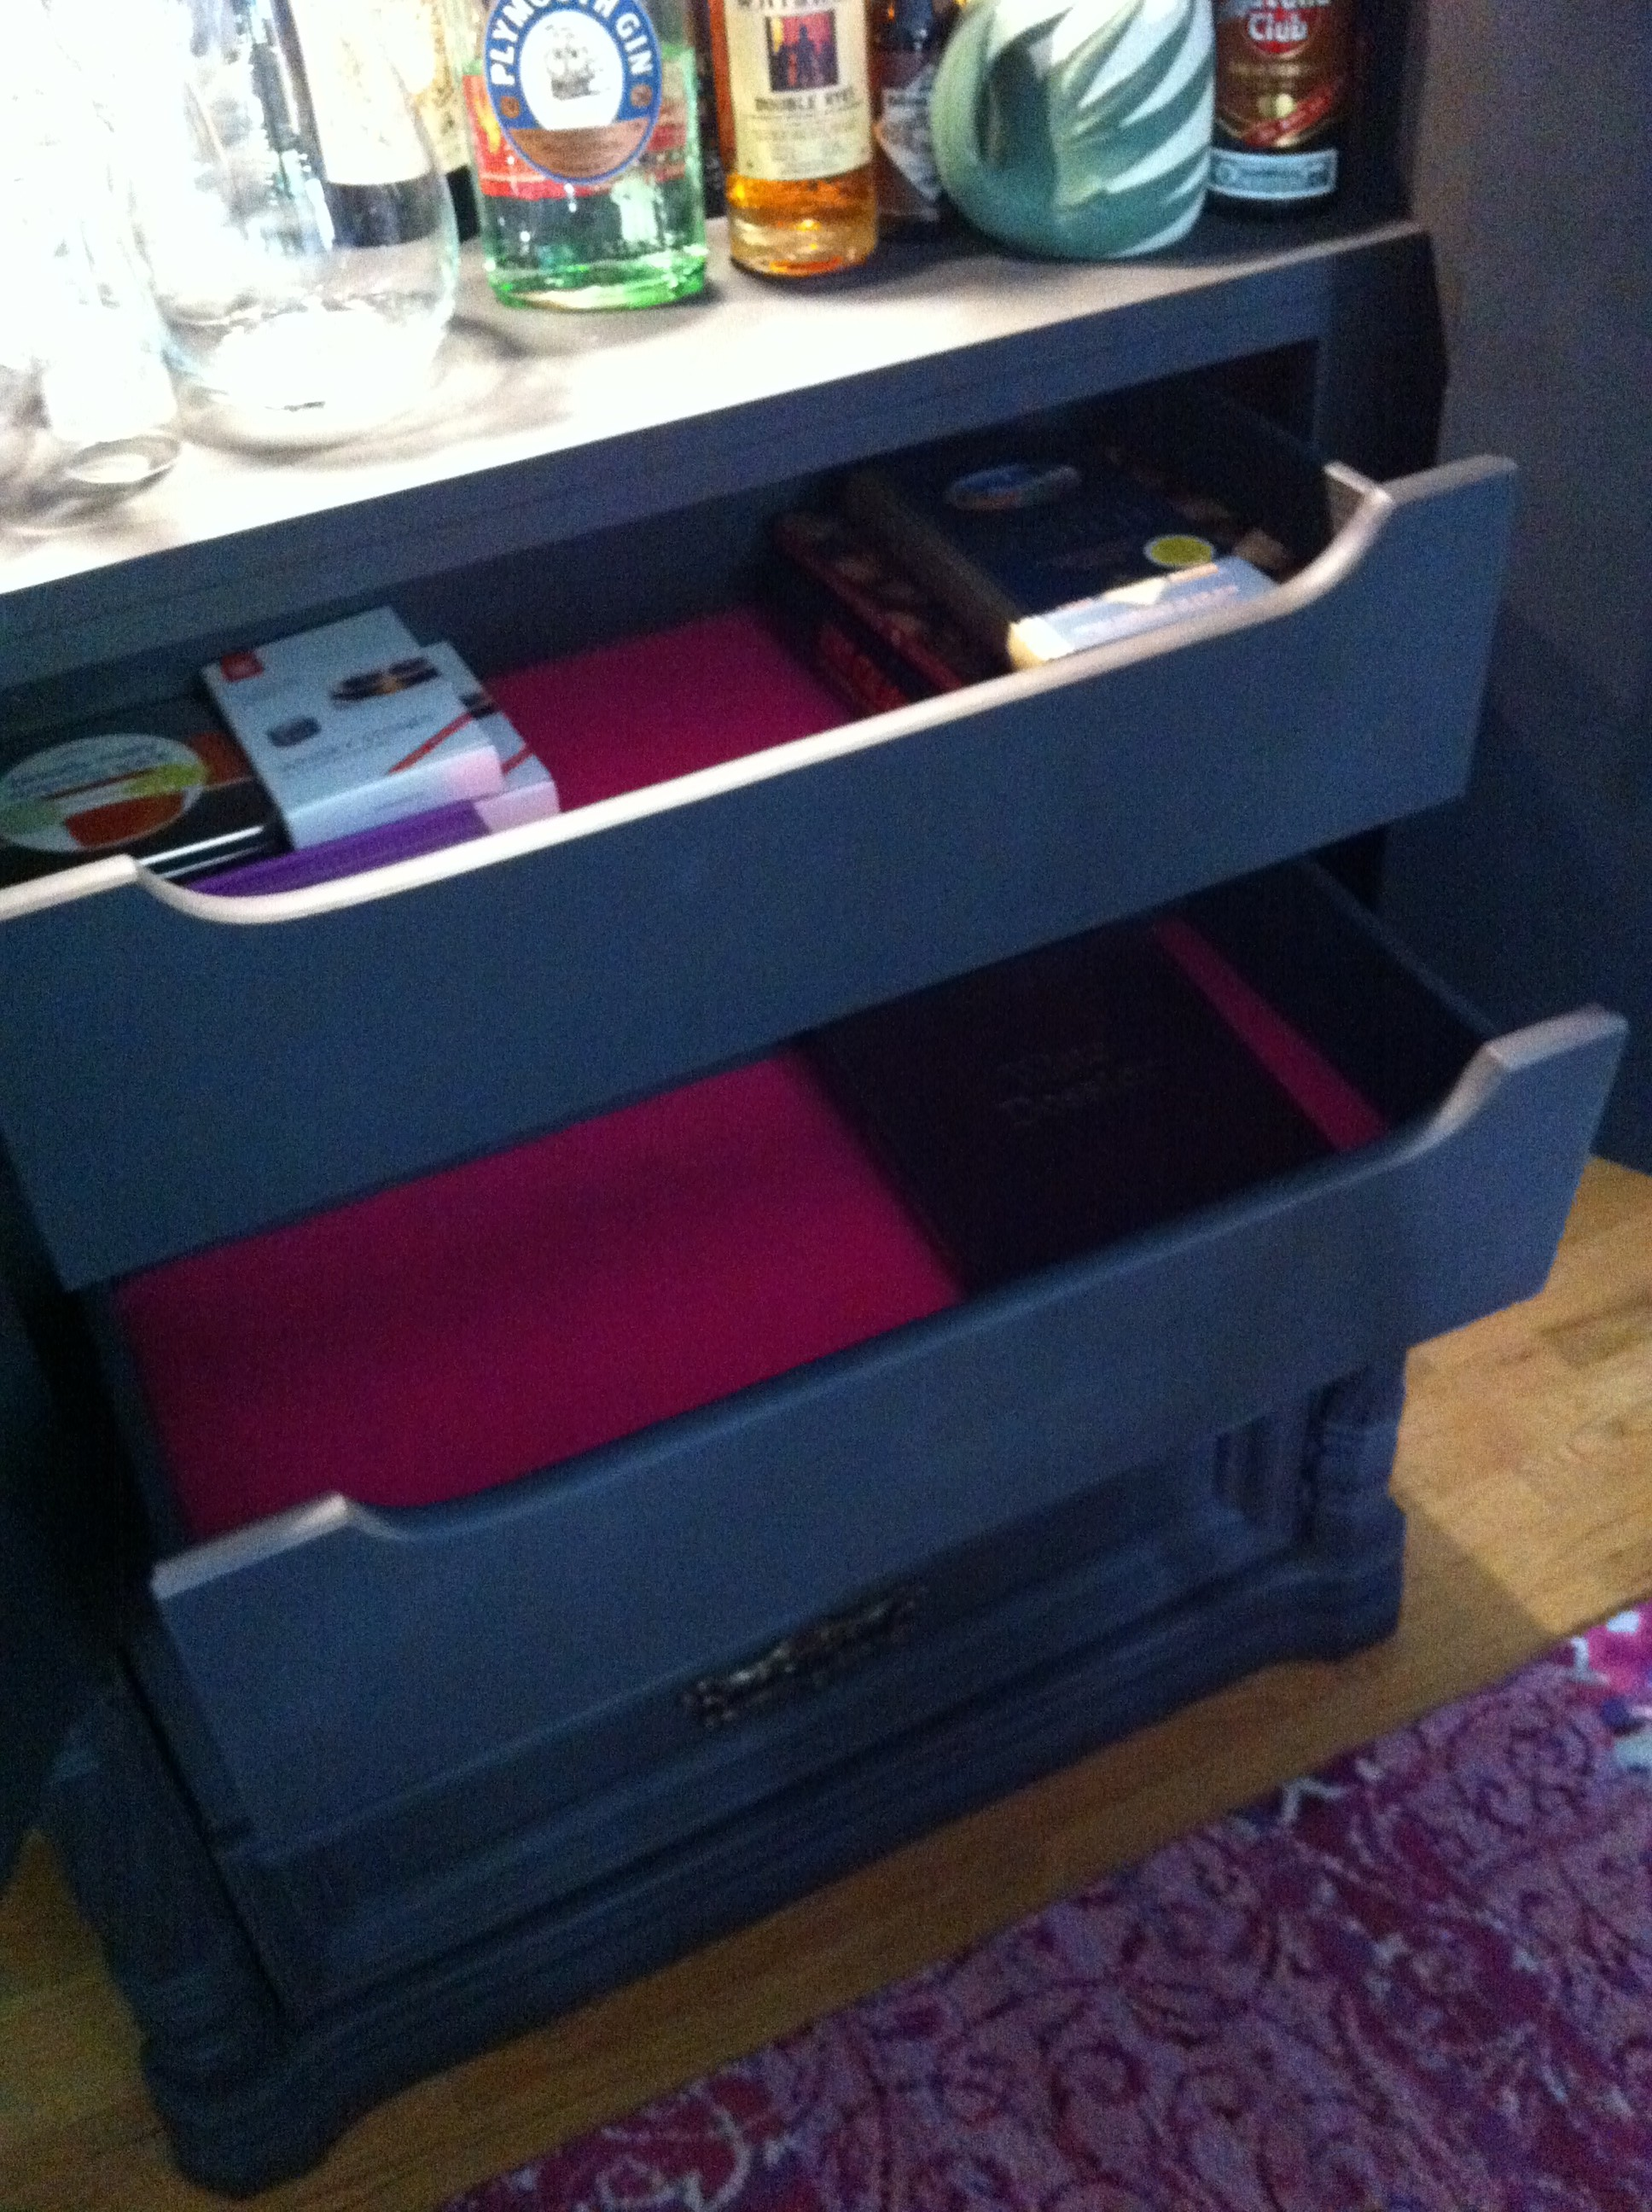 A close up shot of drawers lined in pink felt